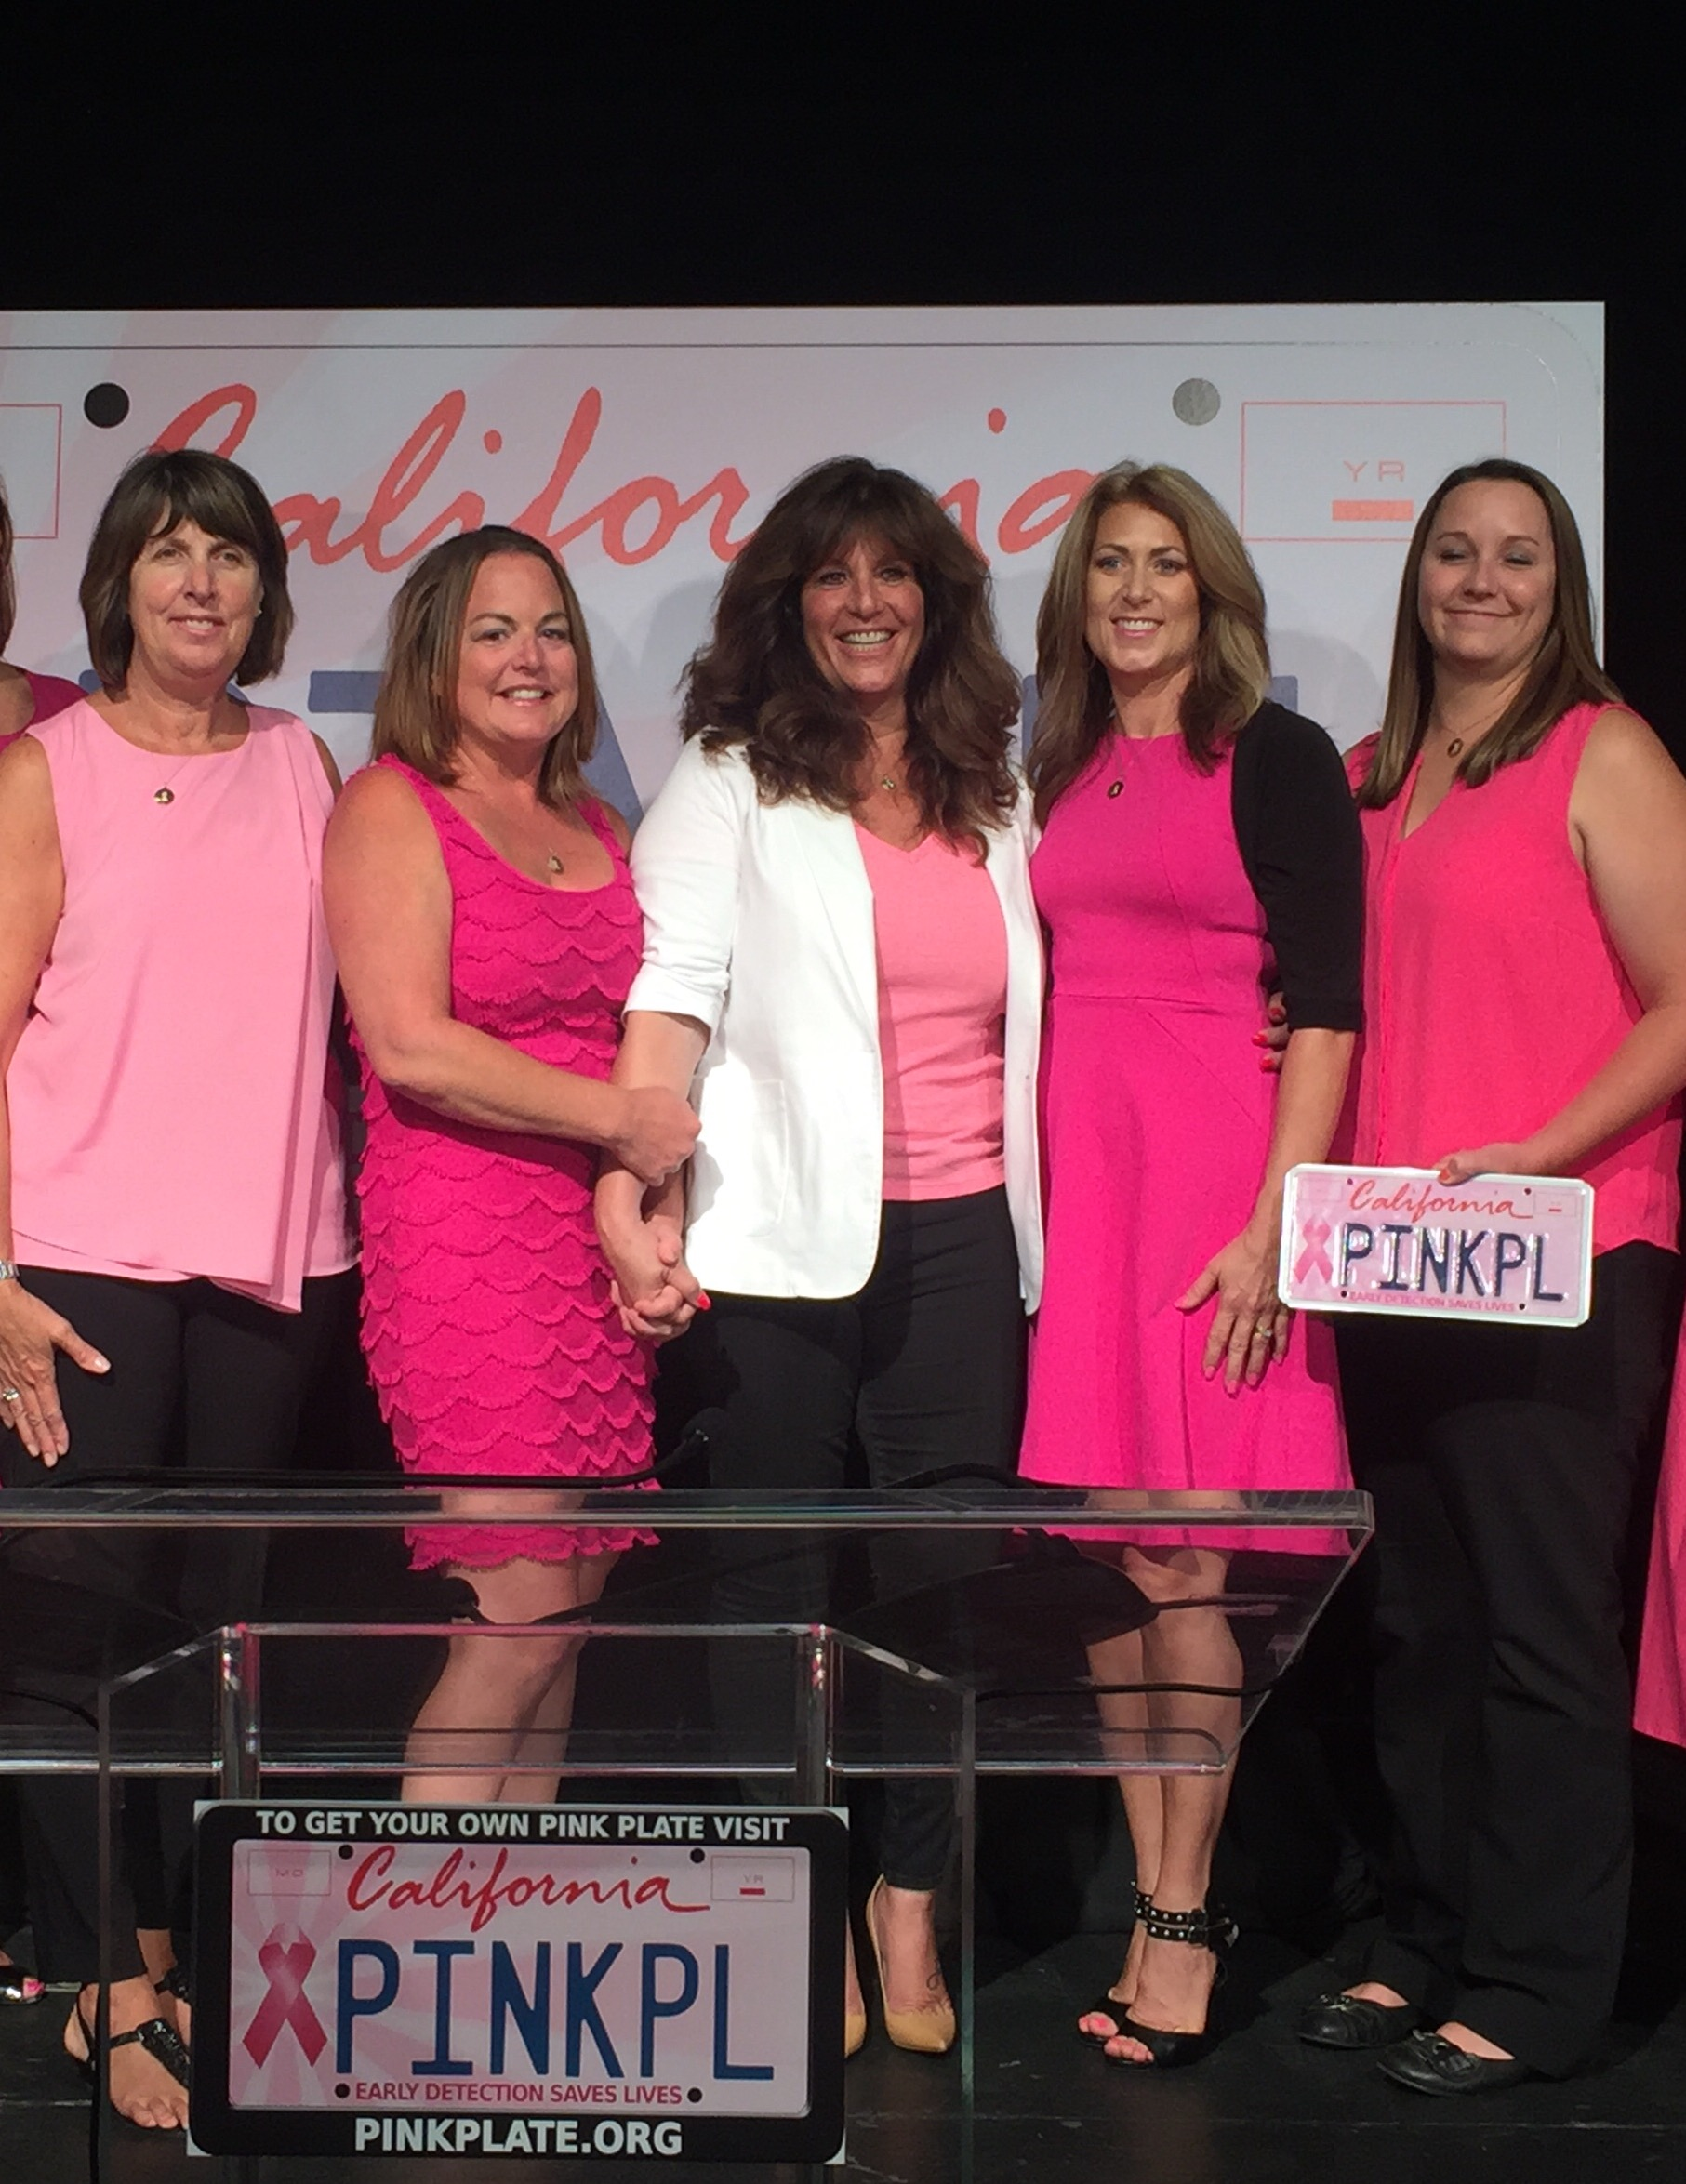 Pictured above: Founders of California Pink Plate. The Grand National hopes to help the organization reach the DMV requirement of 7,500 paid orders which will then move the Pink Ribbon license plate into production.